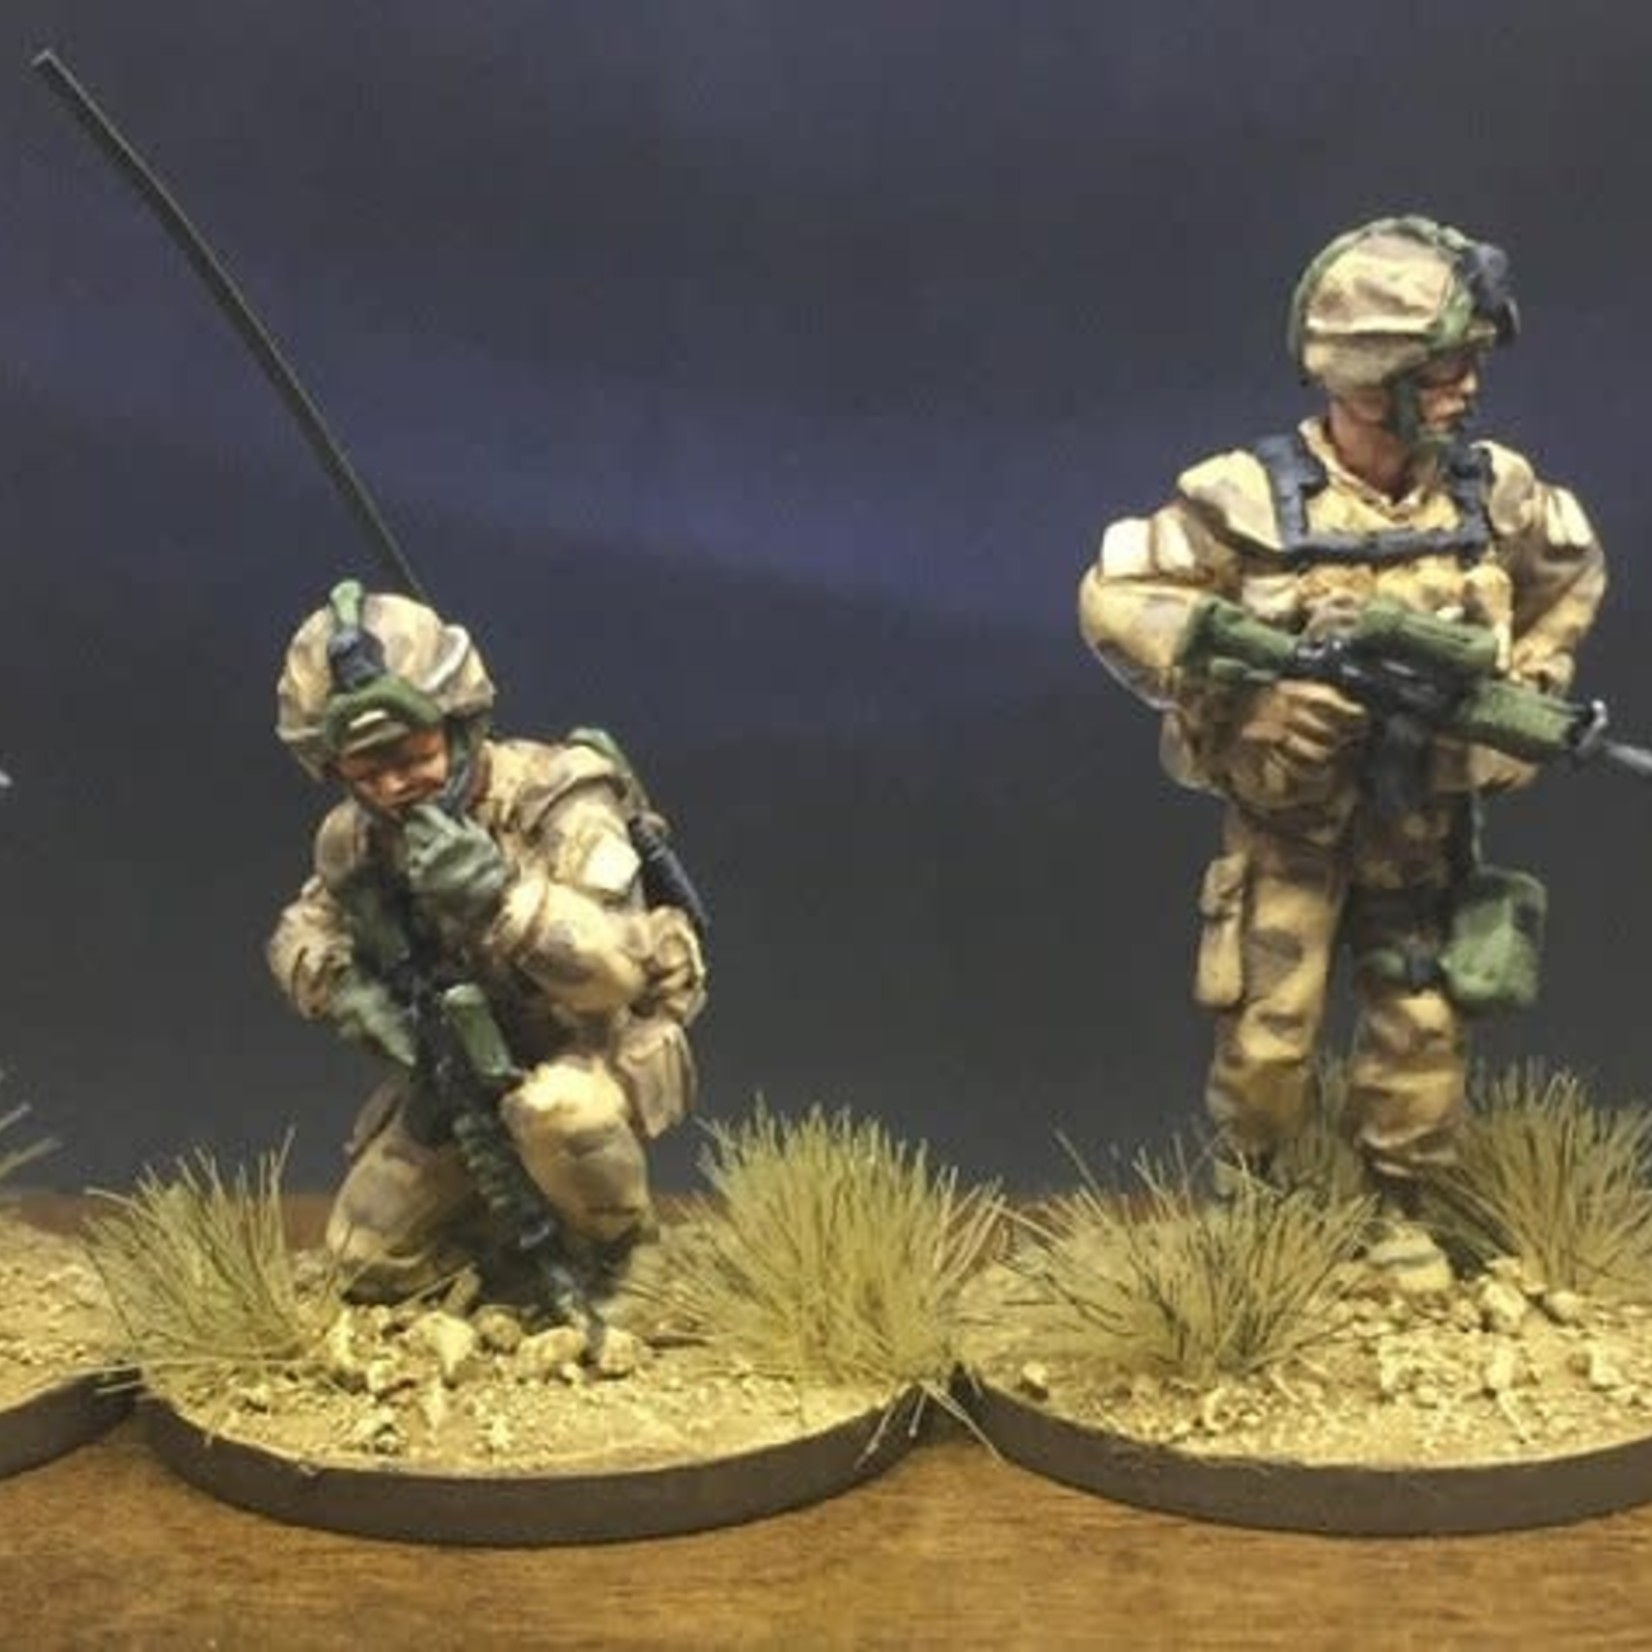 ISAF CANADIAN COMMAND ELEMENT